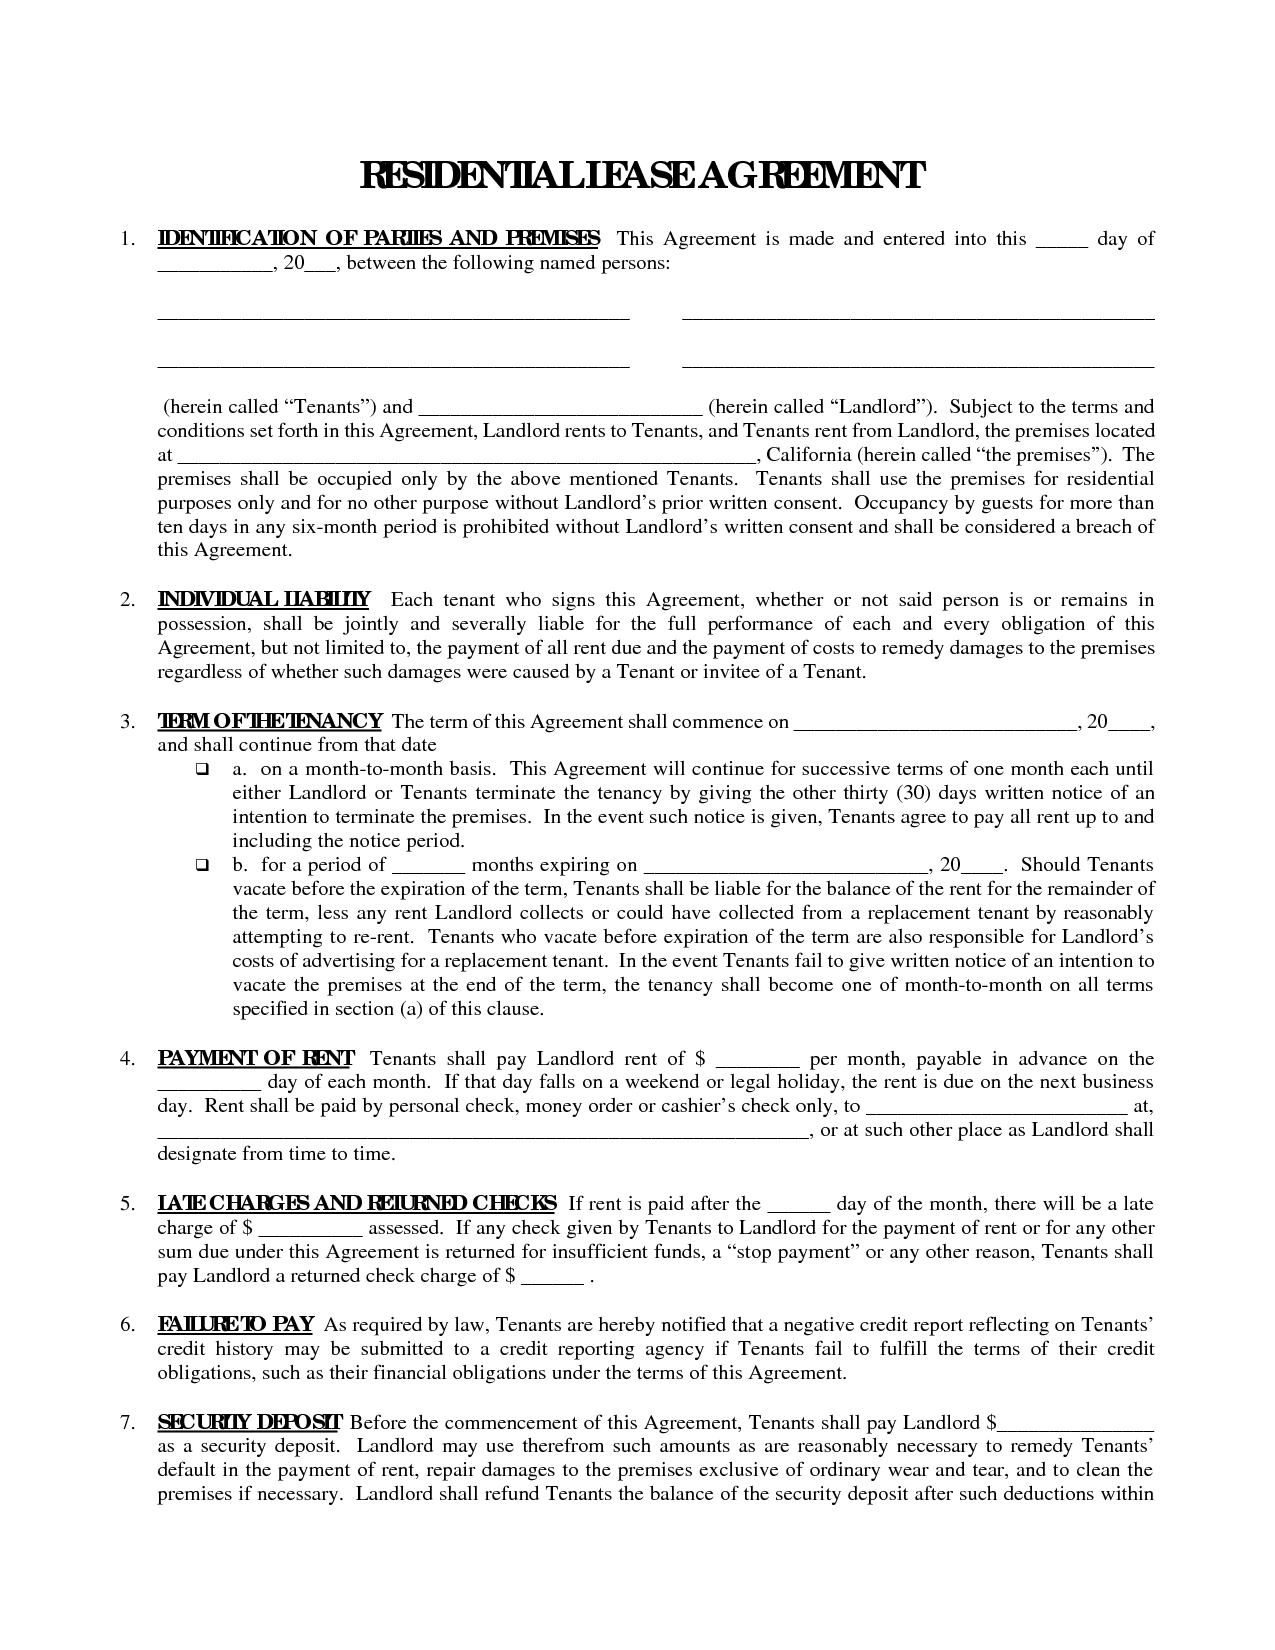 Printable Residential Free House Lease Agreement | Residential Lease - Free Printable California Residential Lease Agreement